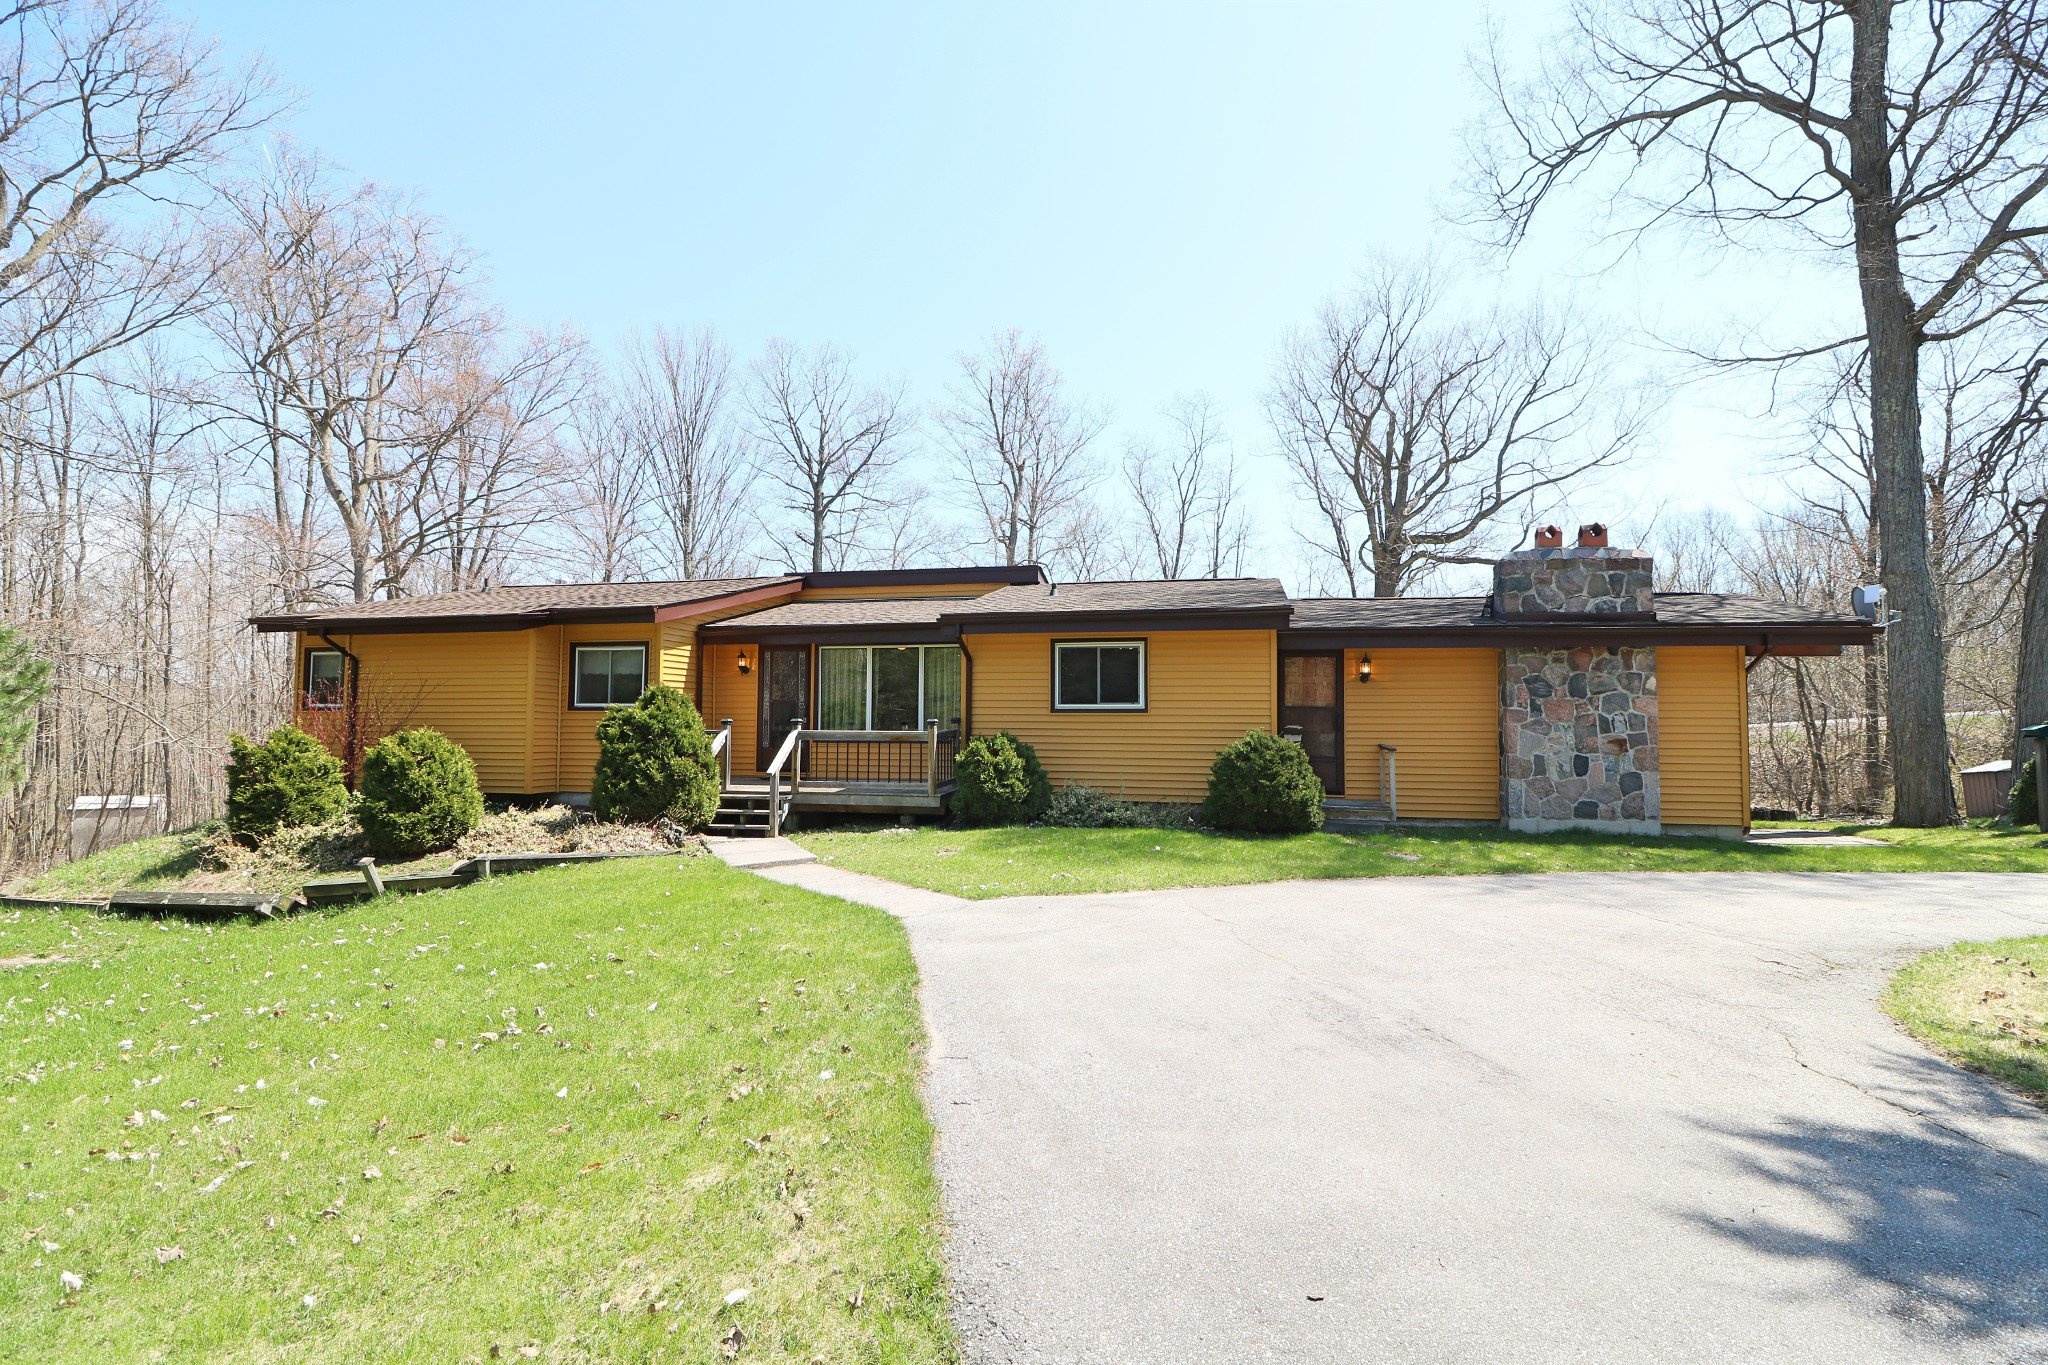 Photo 1: Photos: 37 Halstead Drive in Roseneath: Residential Detached for sale : MLS®# 192863